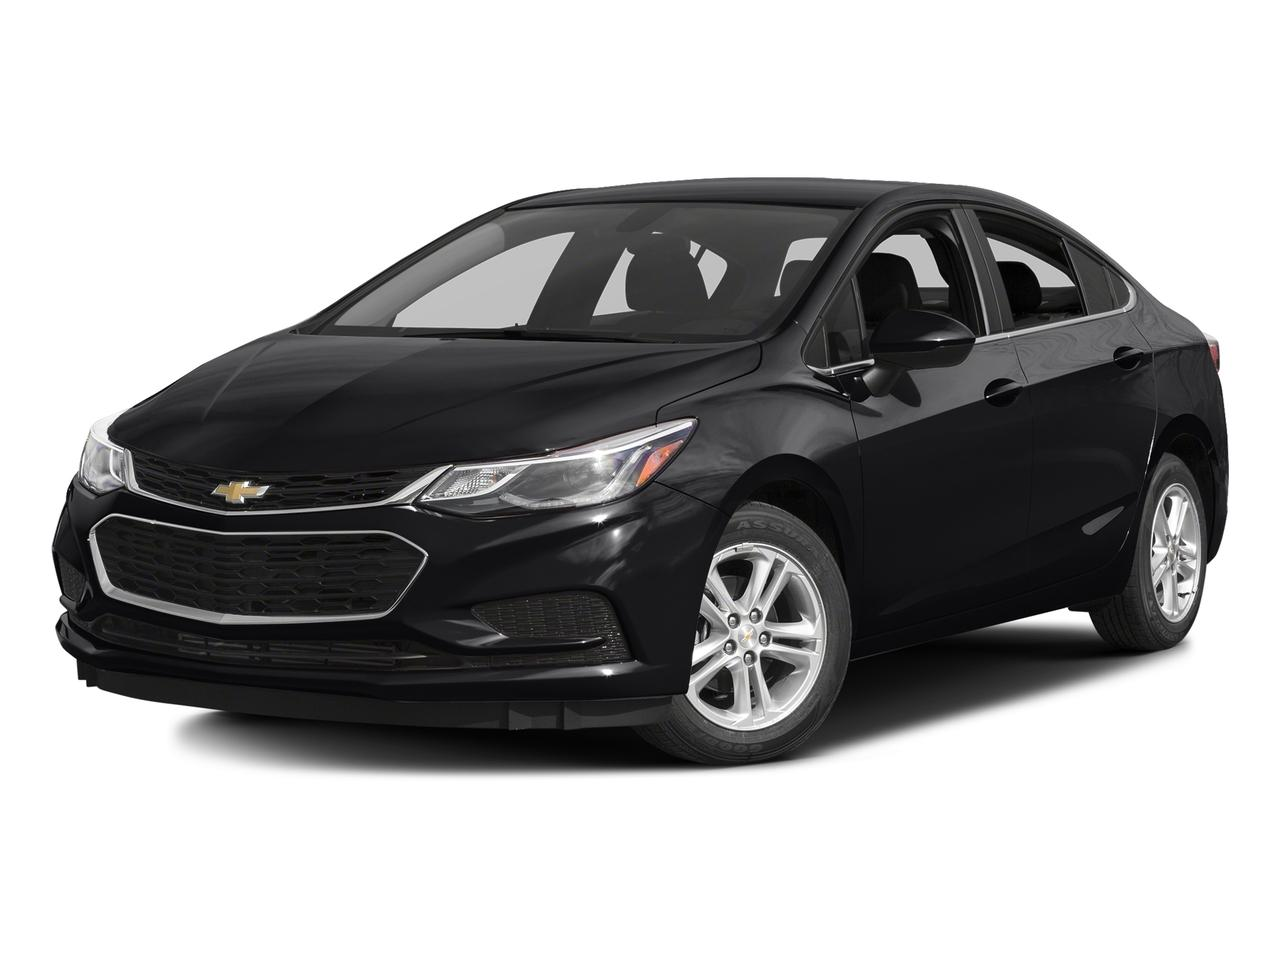 2016 Chevrolet Cruze Vehicle Photo in Moon Township, PA 15108